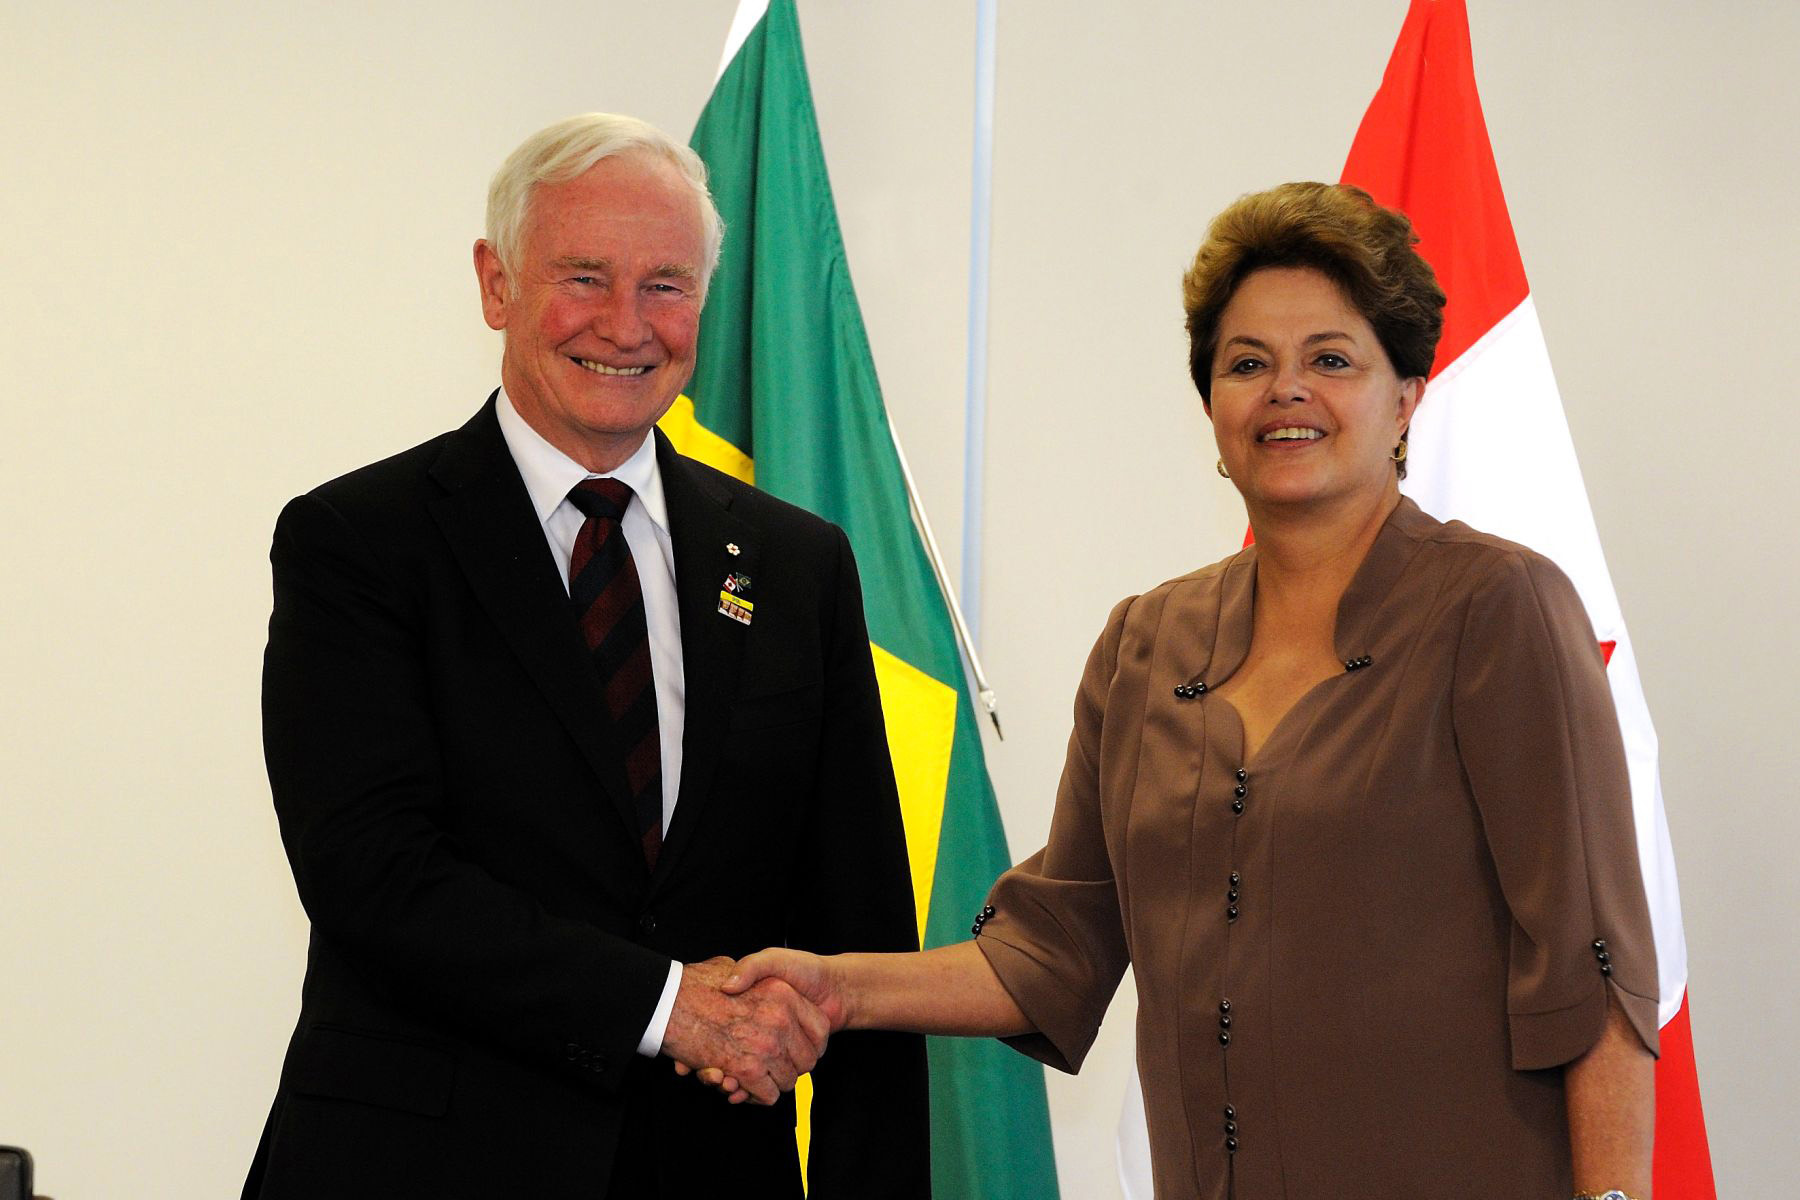 The Governor General and the President of Brazil discussed future partnerships in the fields of education, innovation, science and technology, and commerce, as well as Canada's involvement in Brazil's Science Without Borders scholarship program.